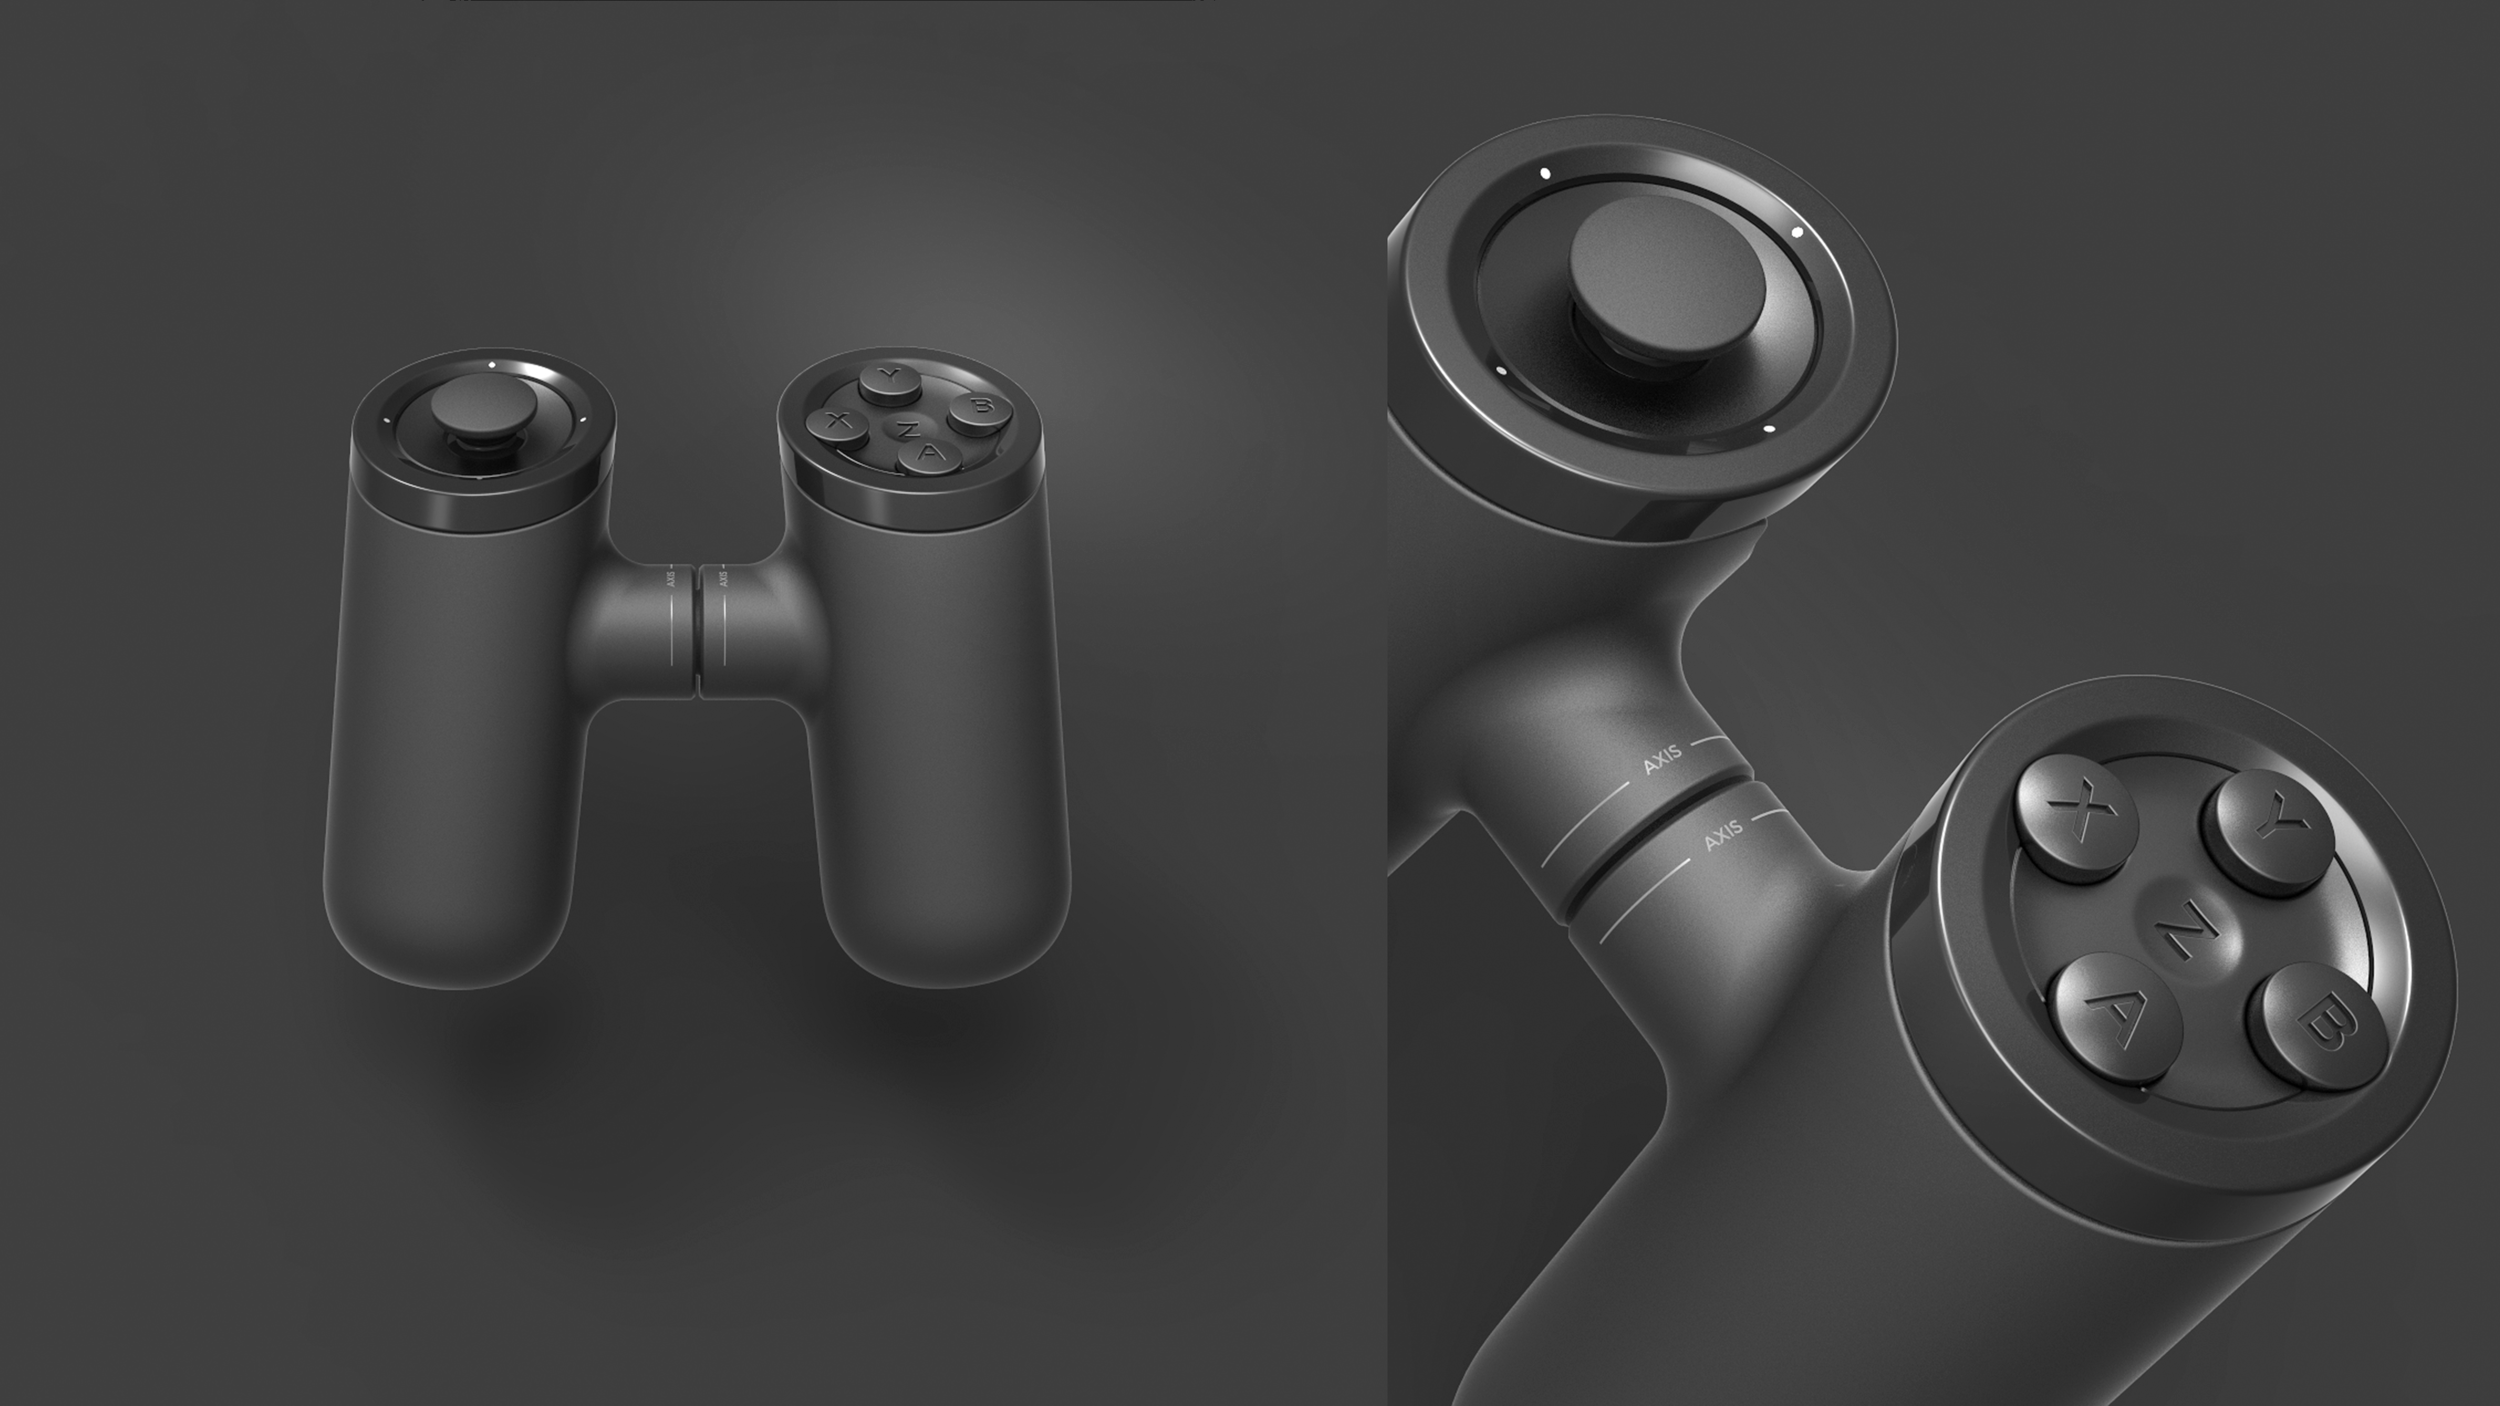 Axis Game Controller Front and Detail Shot. Copyright Creative Session